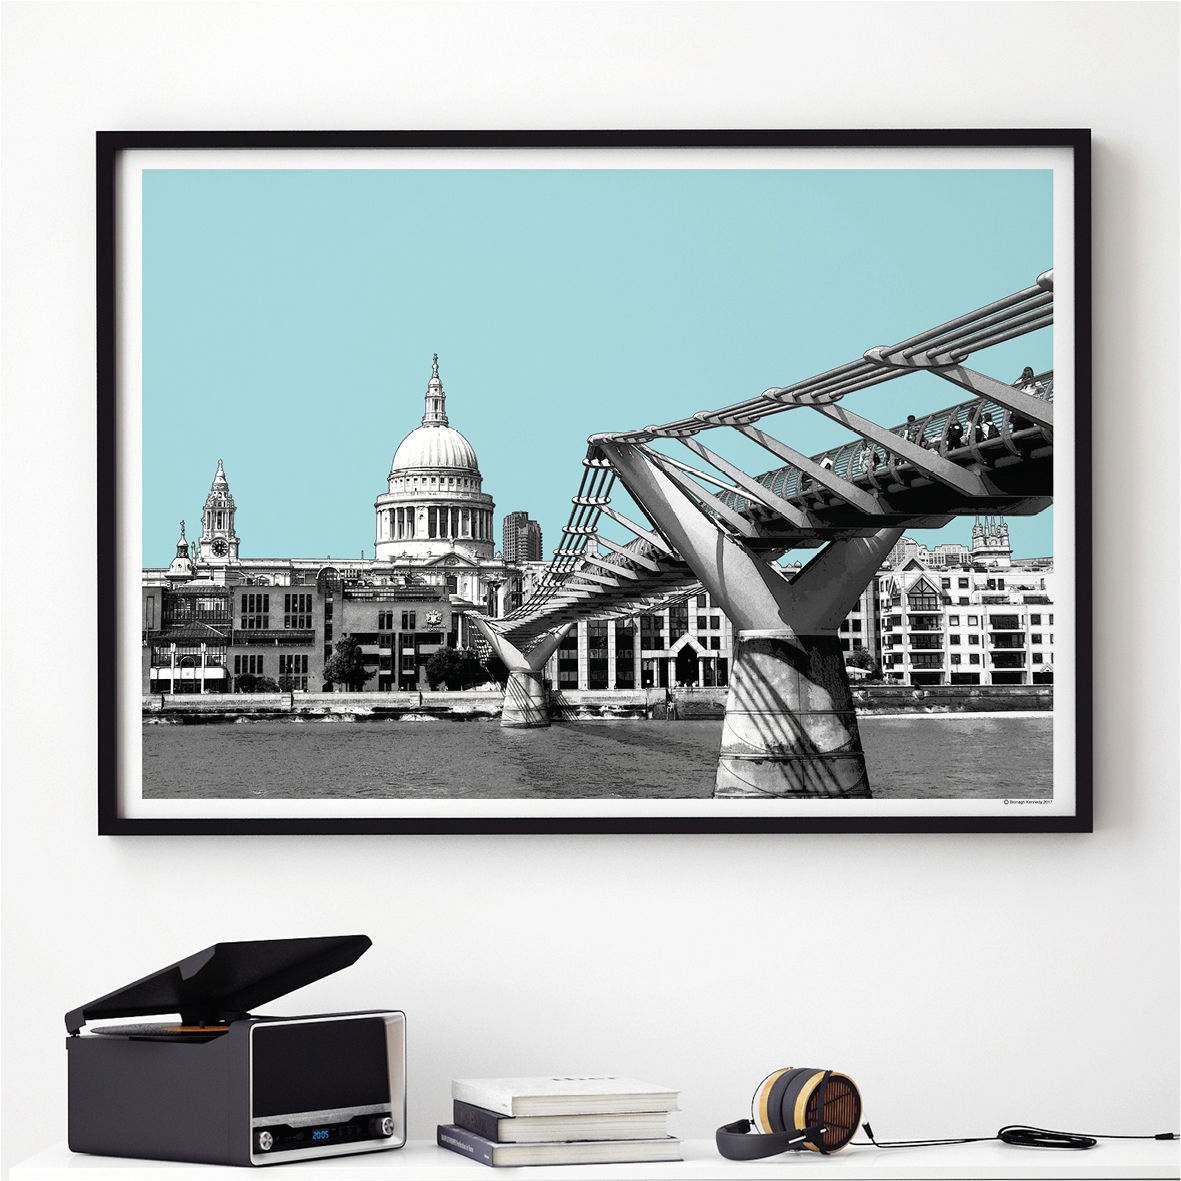 London Art Print   London Skyline   St Paulu0027s Cathedral   London Themed Gift